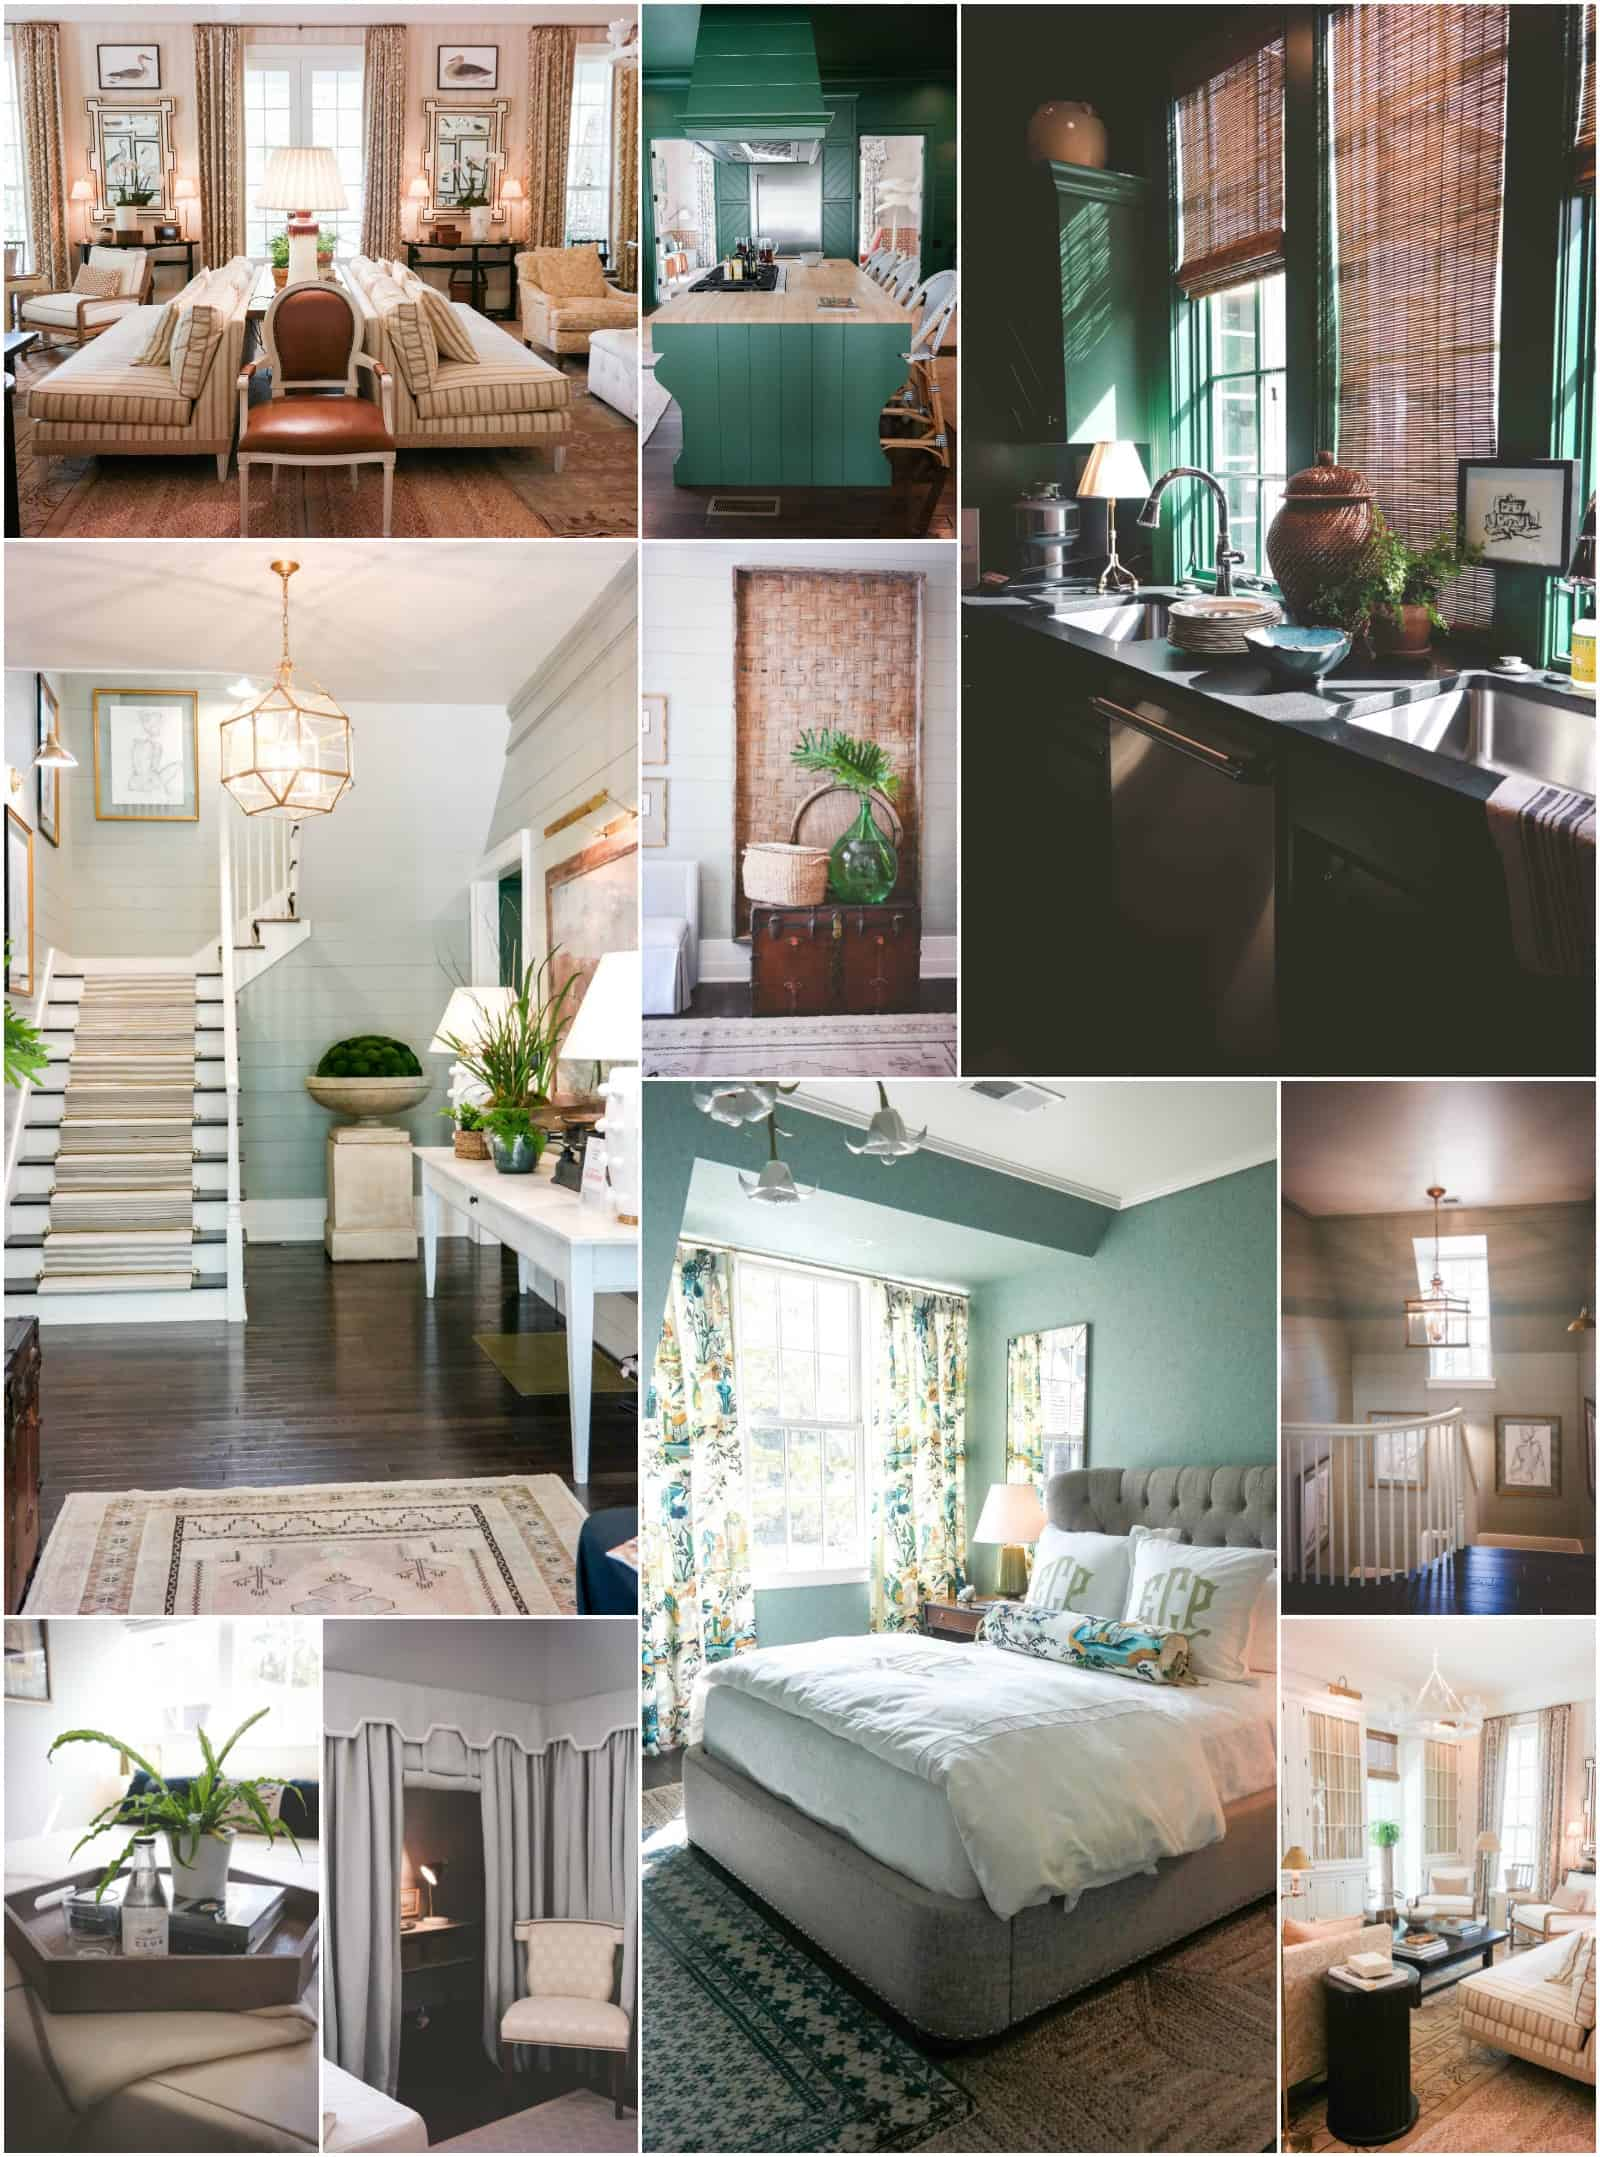 Southern Living 2016 idea house. Southern Living Magazine house tour